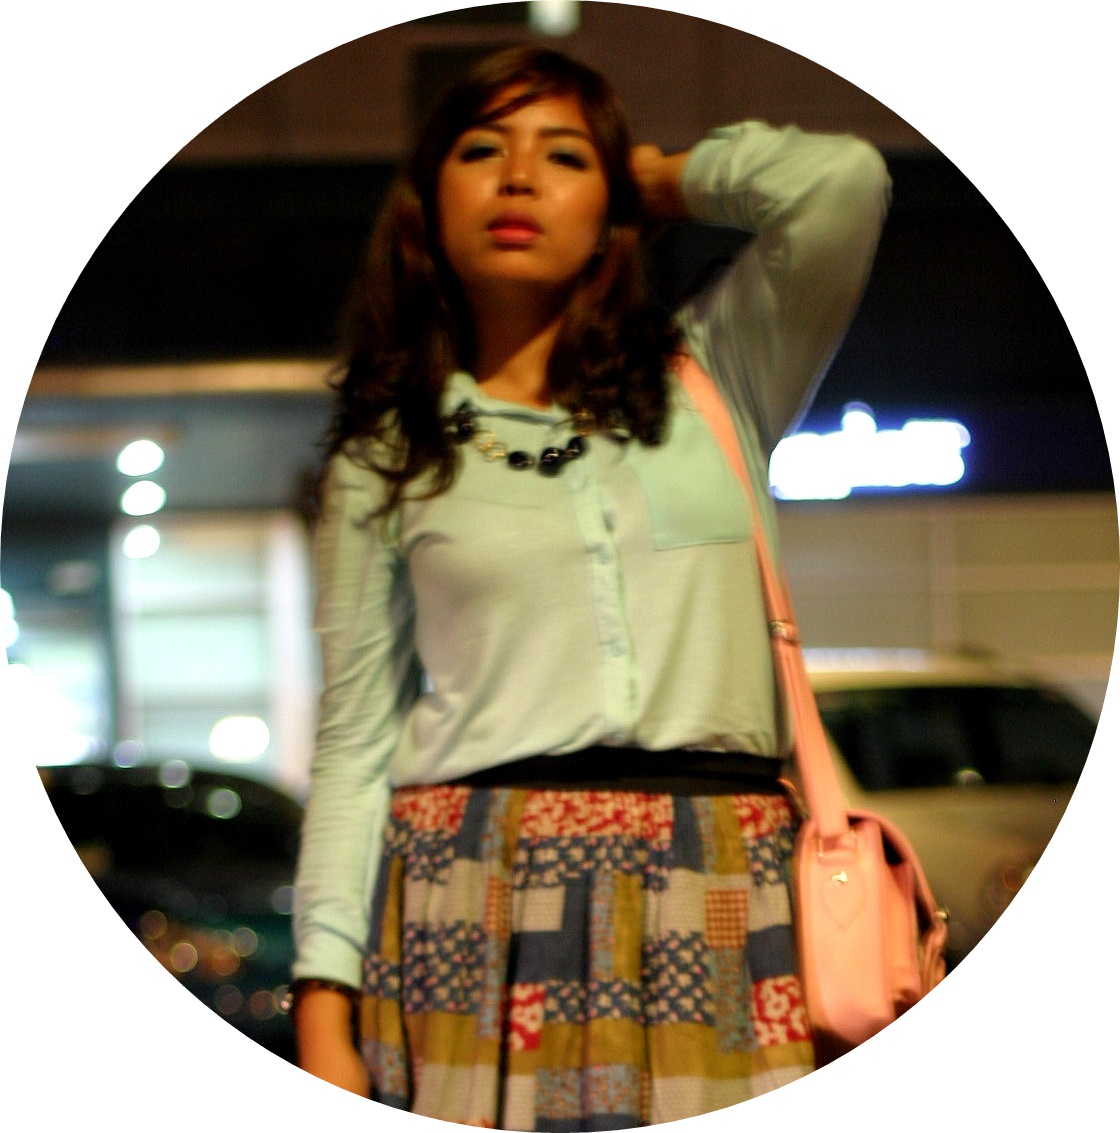 FBS The Blogger photo Sai Montes fashion and beauty blogger in the Philippines